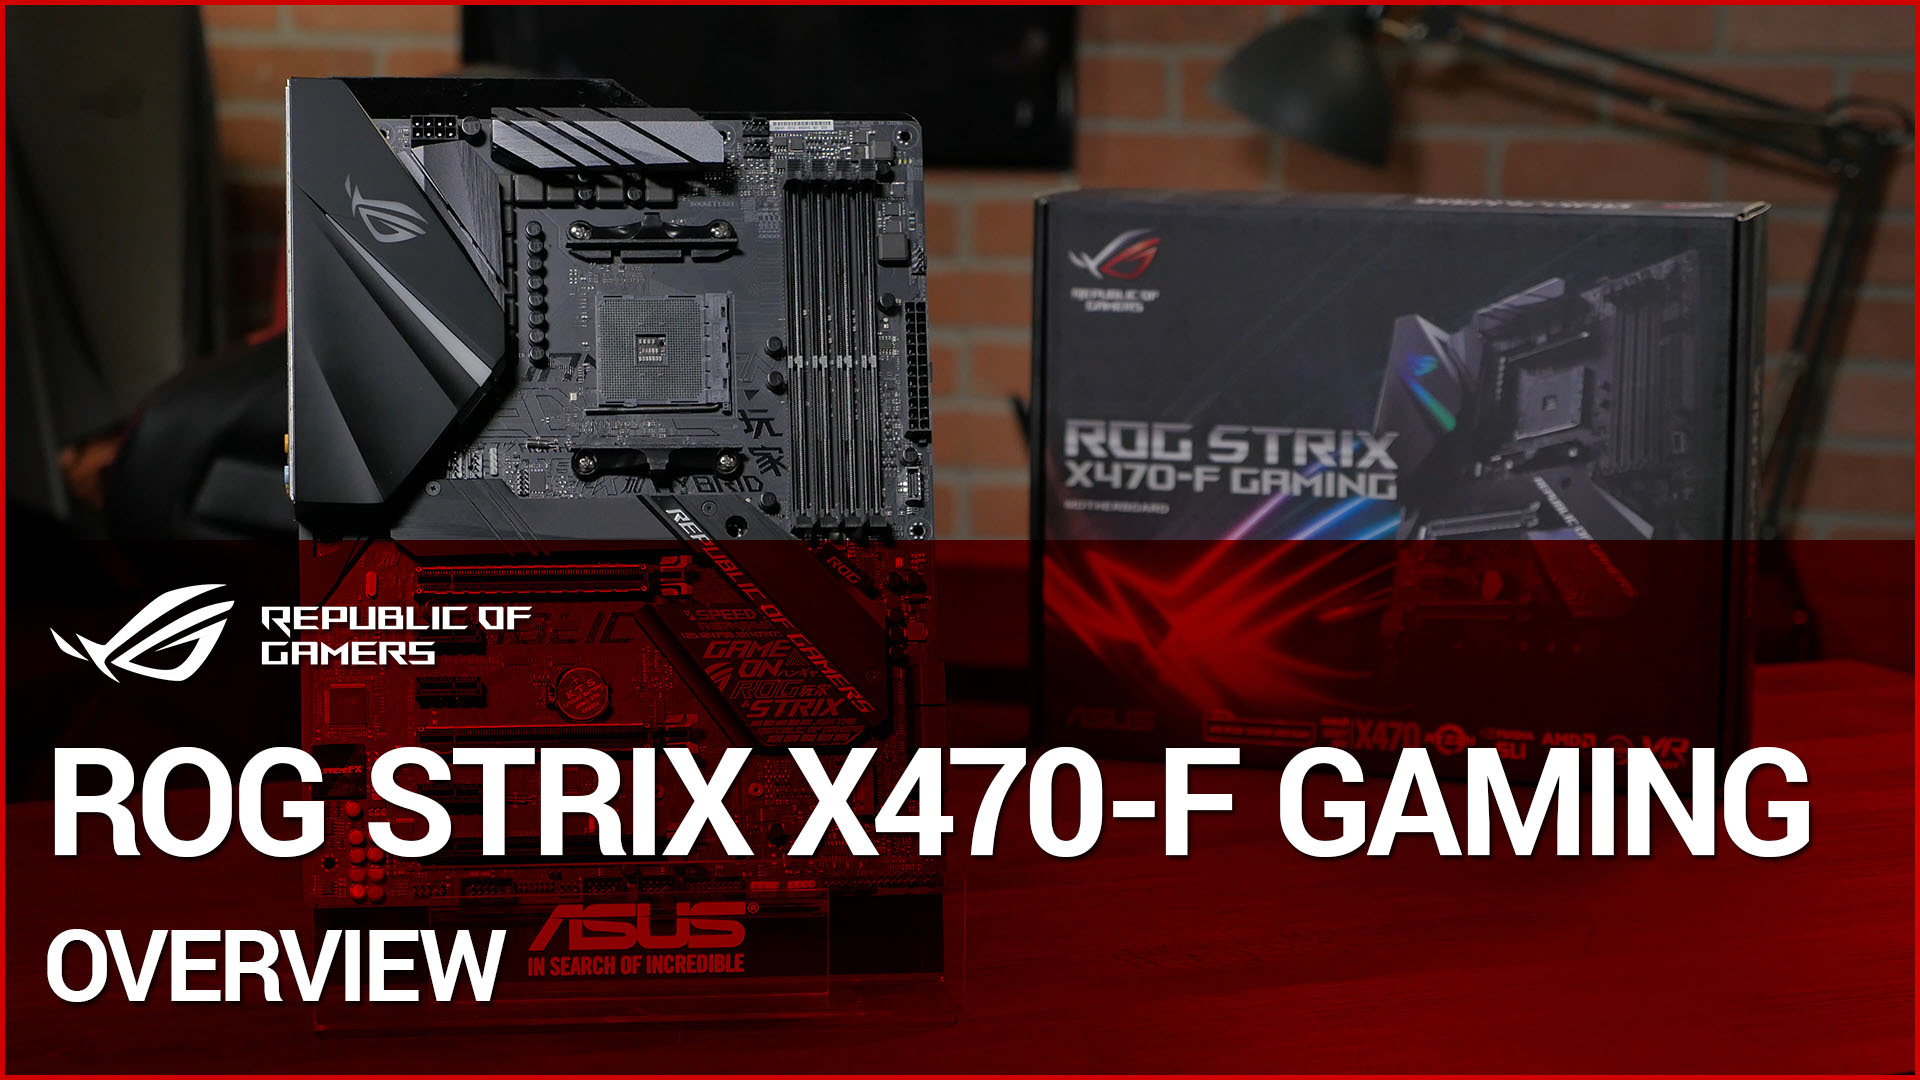 ASUS ROG Strix X470-F Gaming AM4 AMD X470 SATA 6Gb/s USB 3 1 HDMI ATX AMD  Motherboard - Newegg com